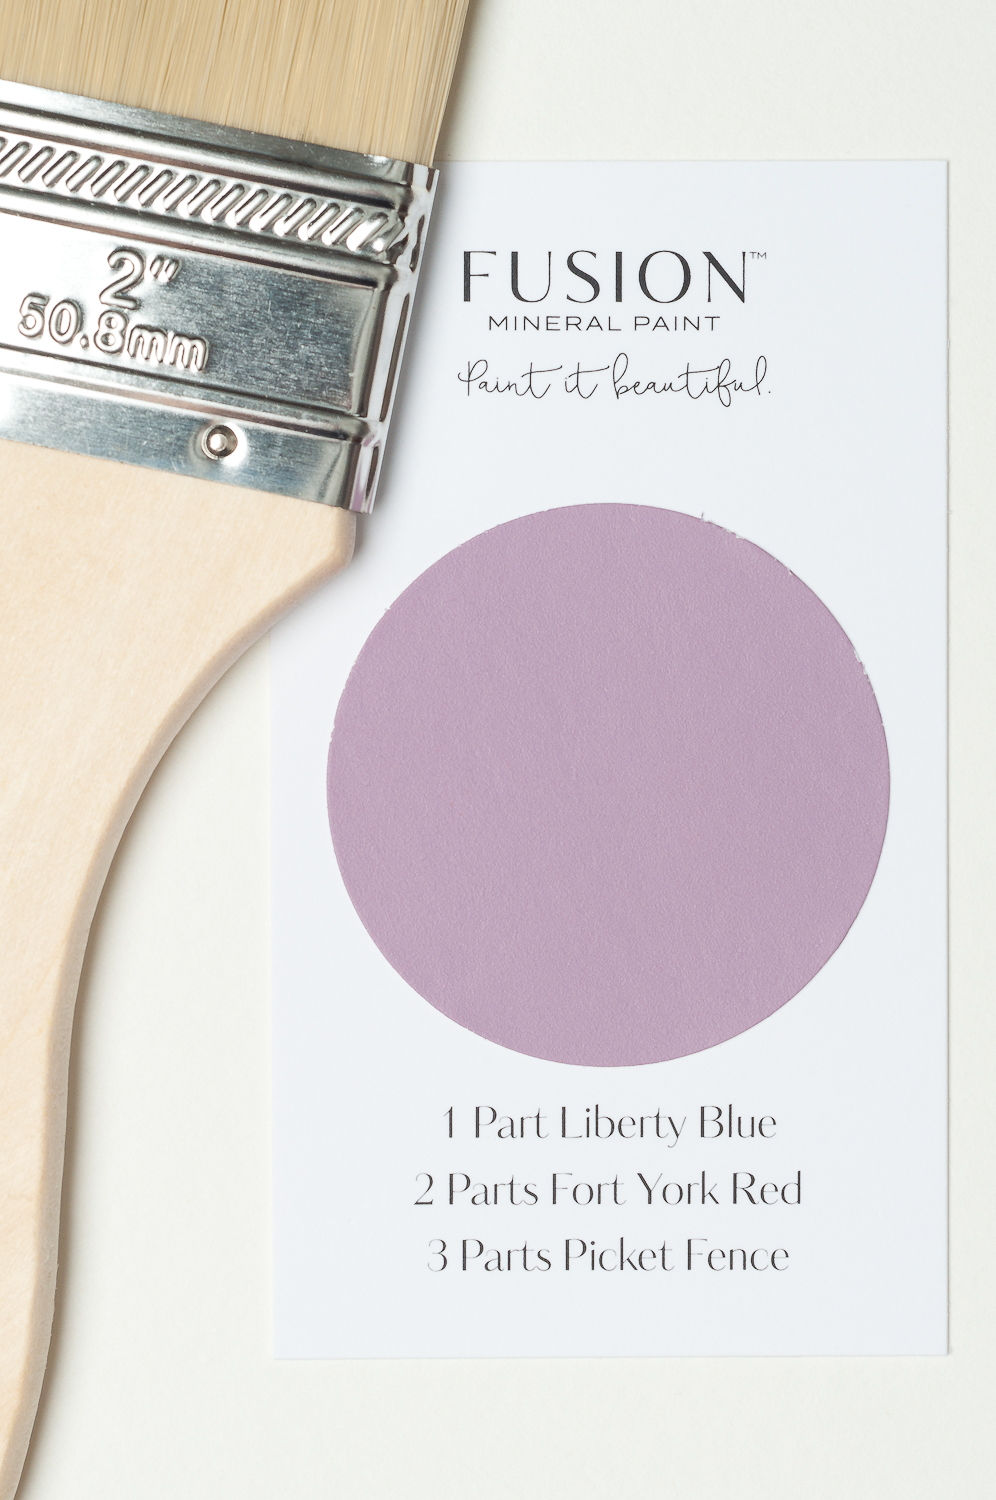 Isn't this a gorgeous Mauve?It's simple to mix Fusion Mineral Paint to create your own custom paint colours. This little recipe card shows you how. There are 32 recipes to choose from! You can see all the custom blend recipes on my website.